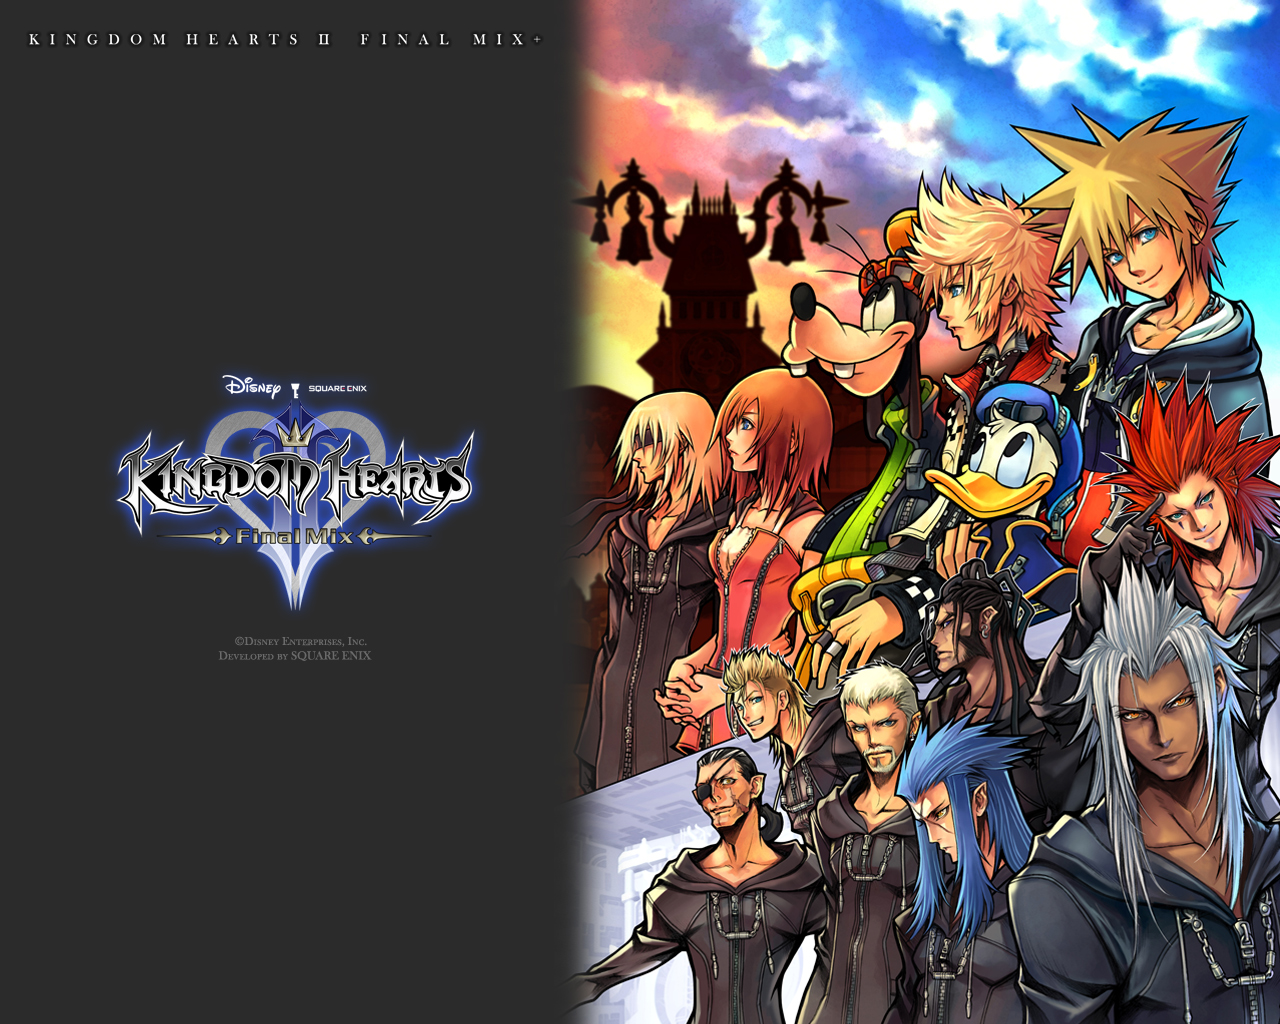 kingdom hearts 2 synthesise Kingdom hearts hd 25 - synthesis guide (part 2) & ultima weapon - duration: 13:26 bizkit047 62,331 views 13:26 kingdom hearts ii final mix - keyblades.